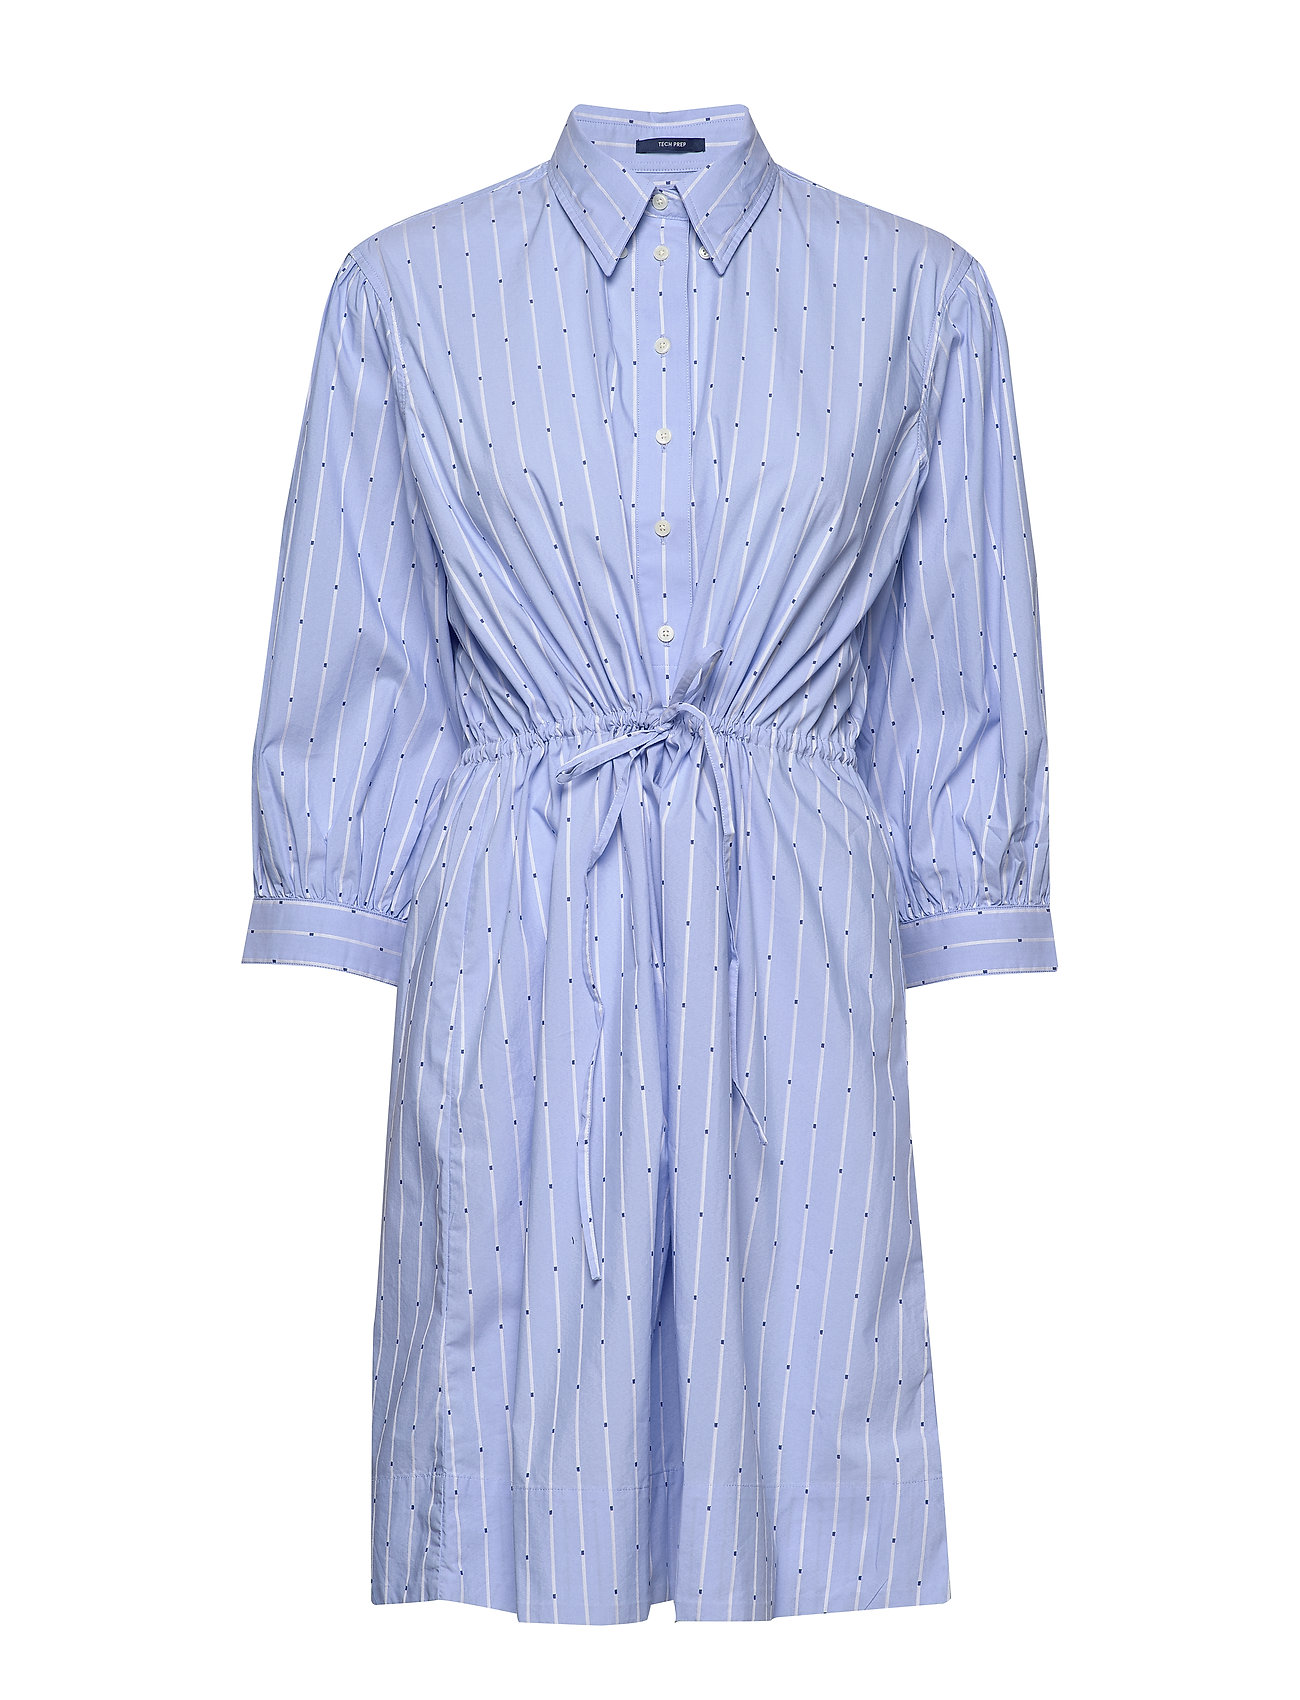 Gant D1. TP DOBBY DRAWSTRING DRESS - PACIFIC BLUE